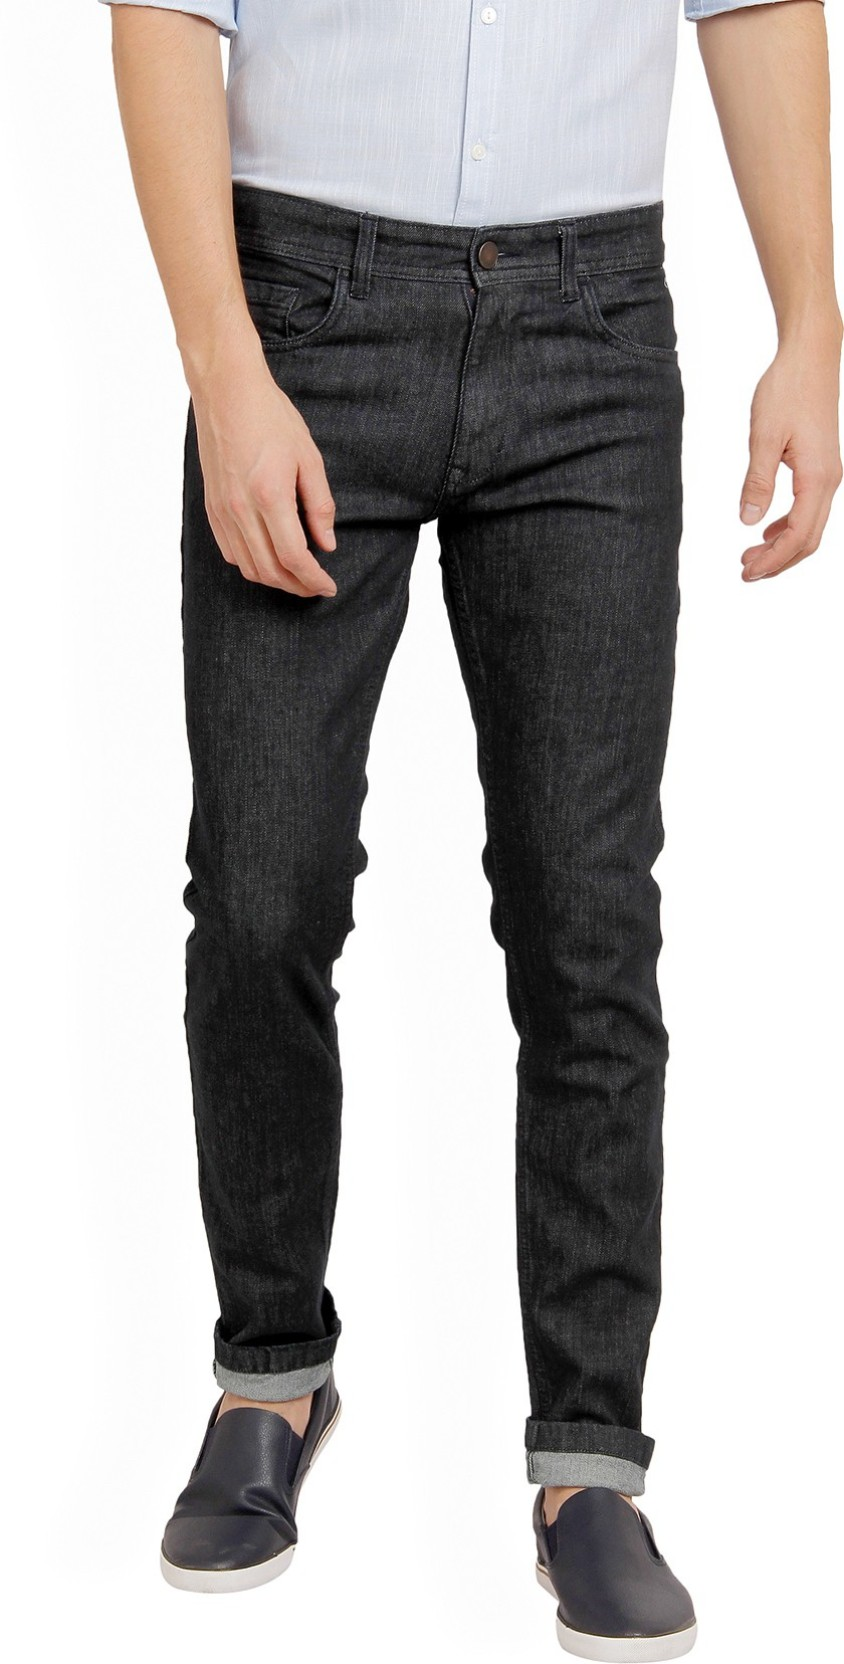 dc36ecb4 Derby Jeans Community Regular Men's Blue Jeans - Buy Derby Jeans ...